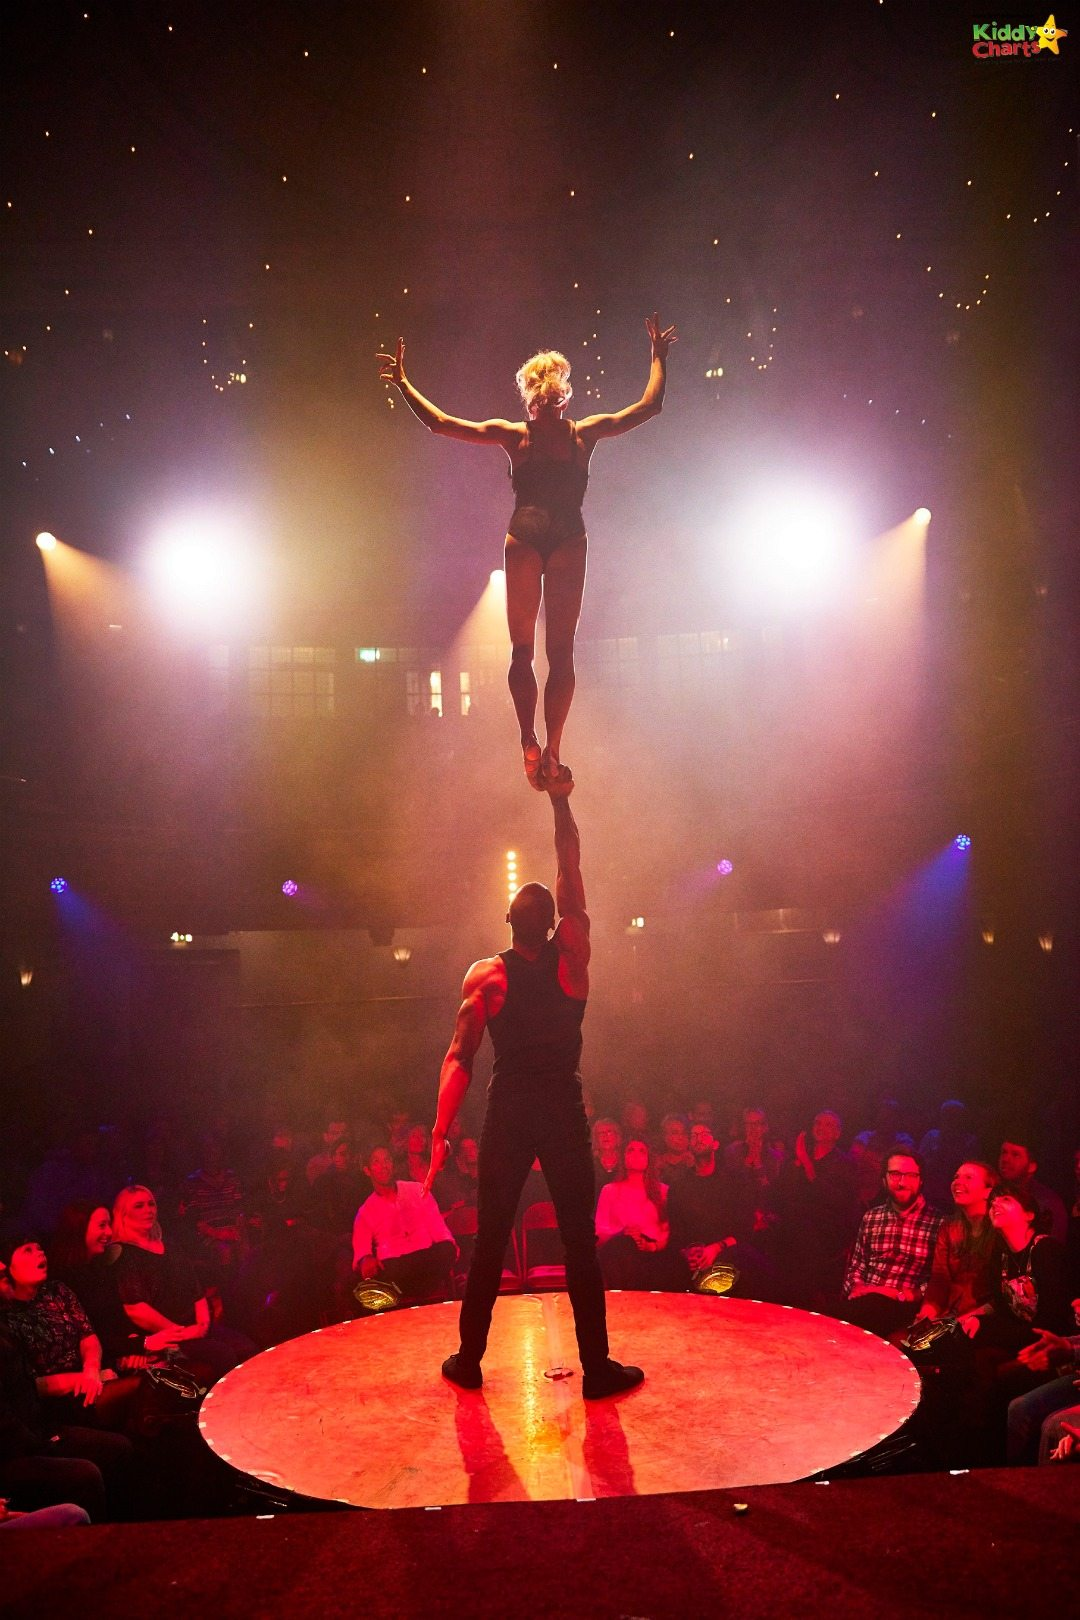 This isn't the harmless rudeness for school boys - this is just stunning skill from the La Petite Soiree performers.